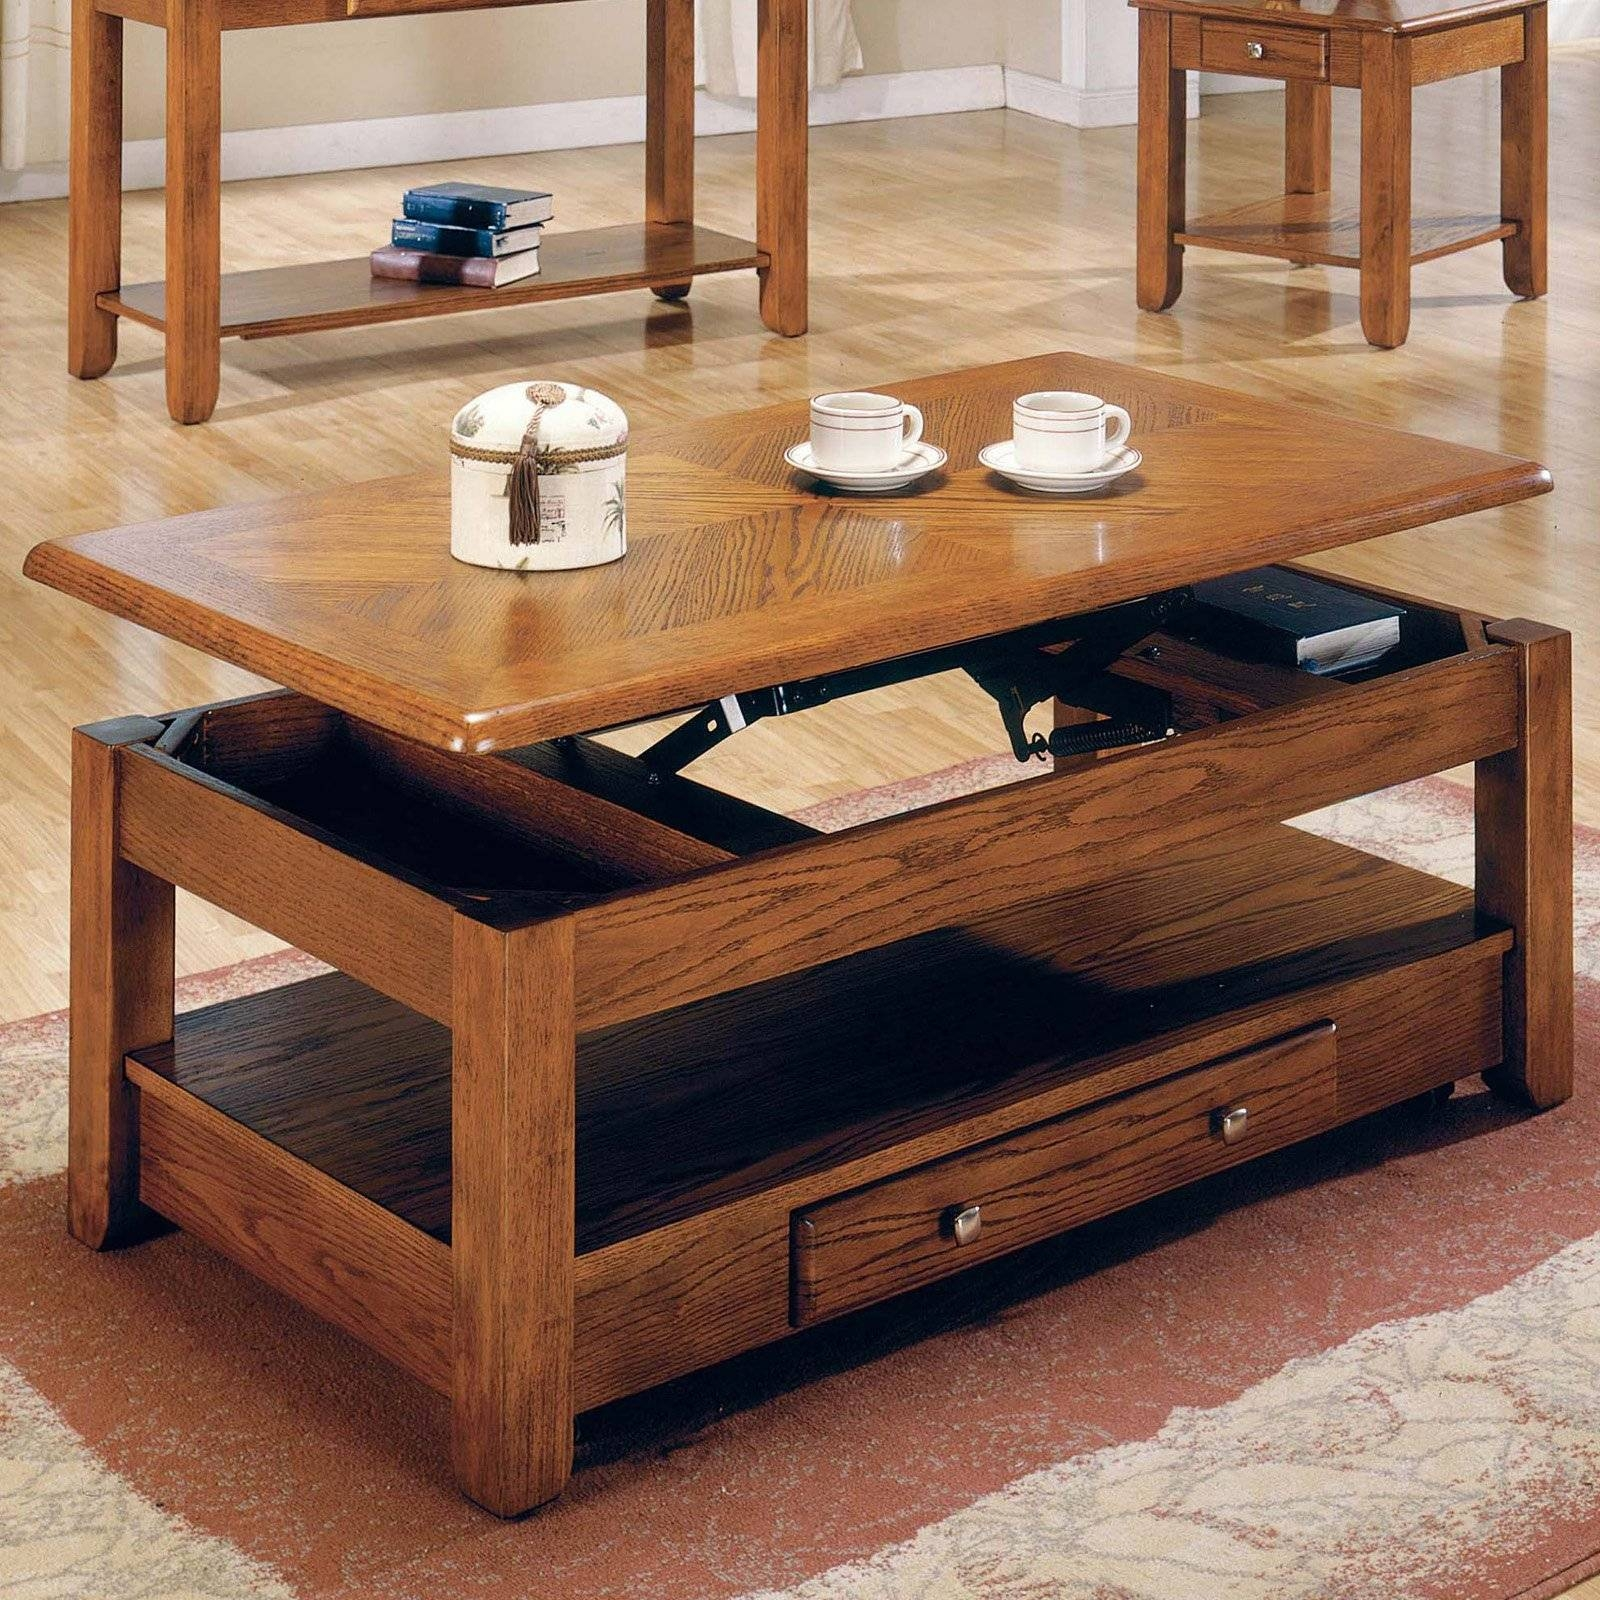 30 Best Coffee Tables Top Lifts Up